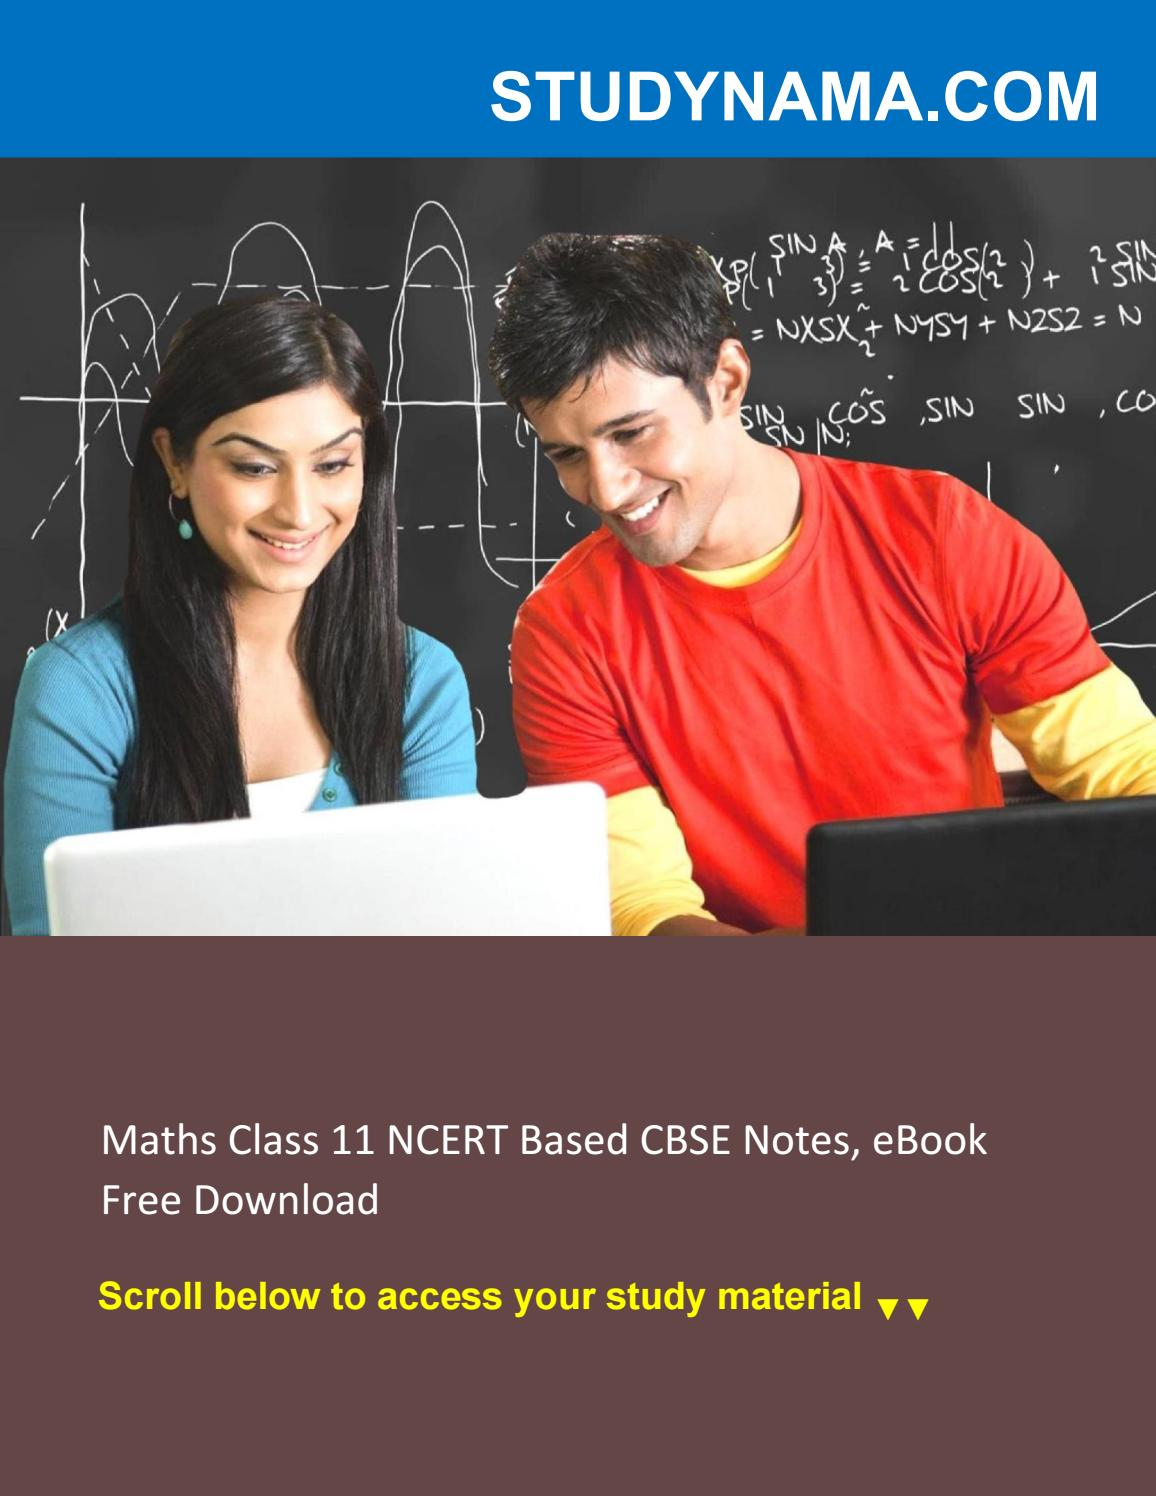 Maths Class 11 NCERT Based CBSE Notes, eBook Free Download